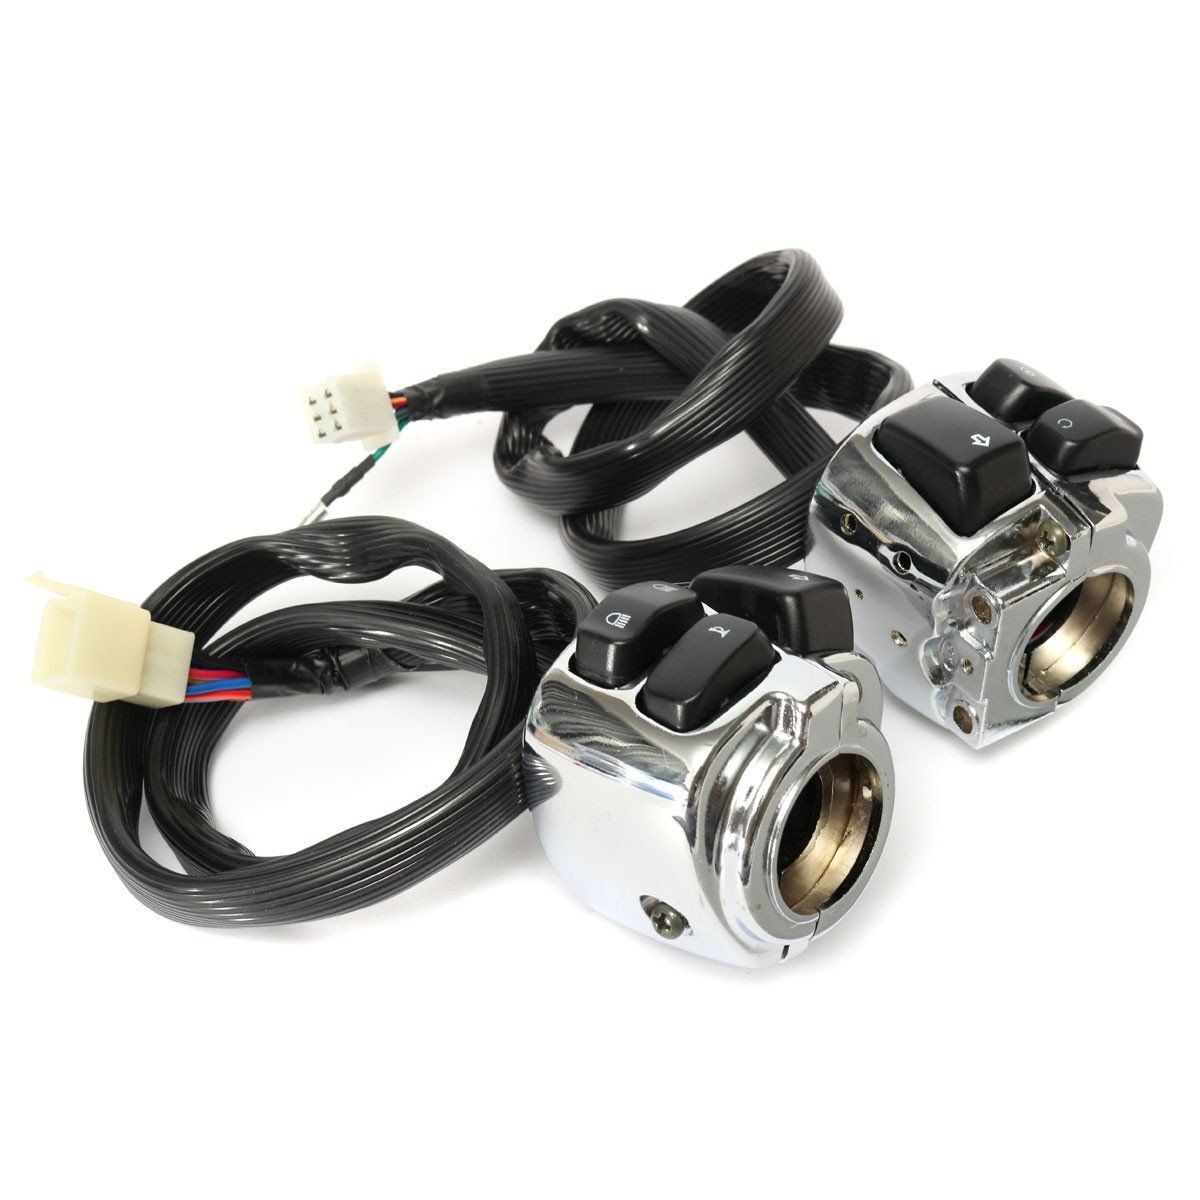 1 Inch Handlebar Control Switches With Wiring Harness For Harley Davidson Switch Motorcycle